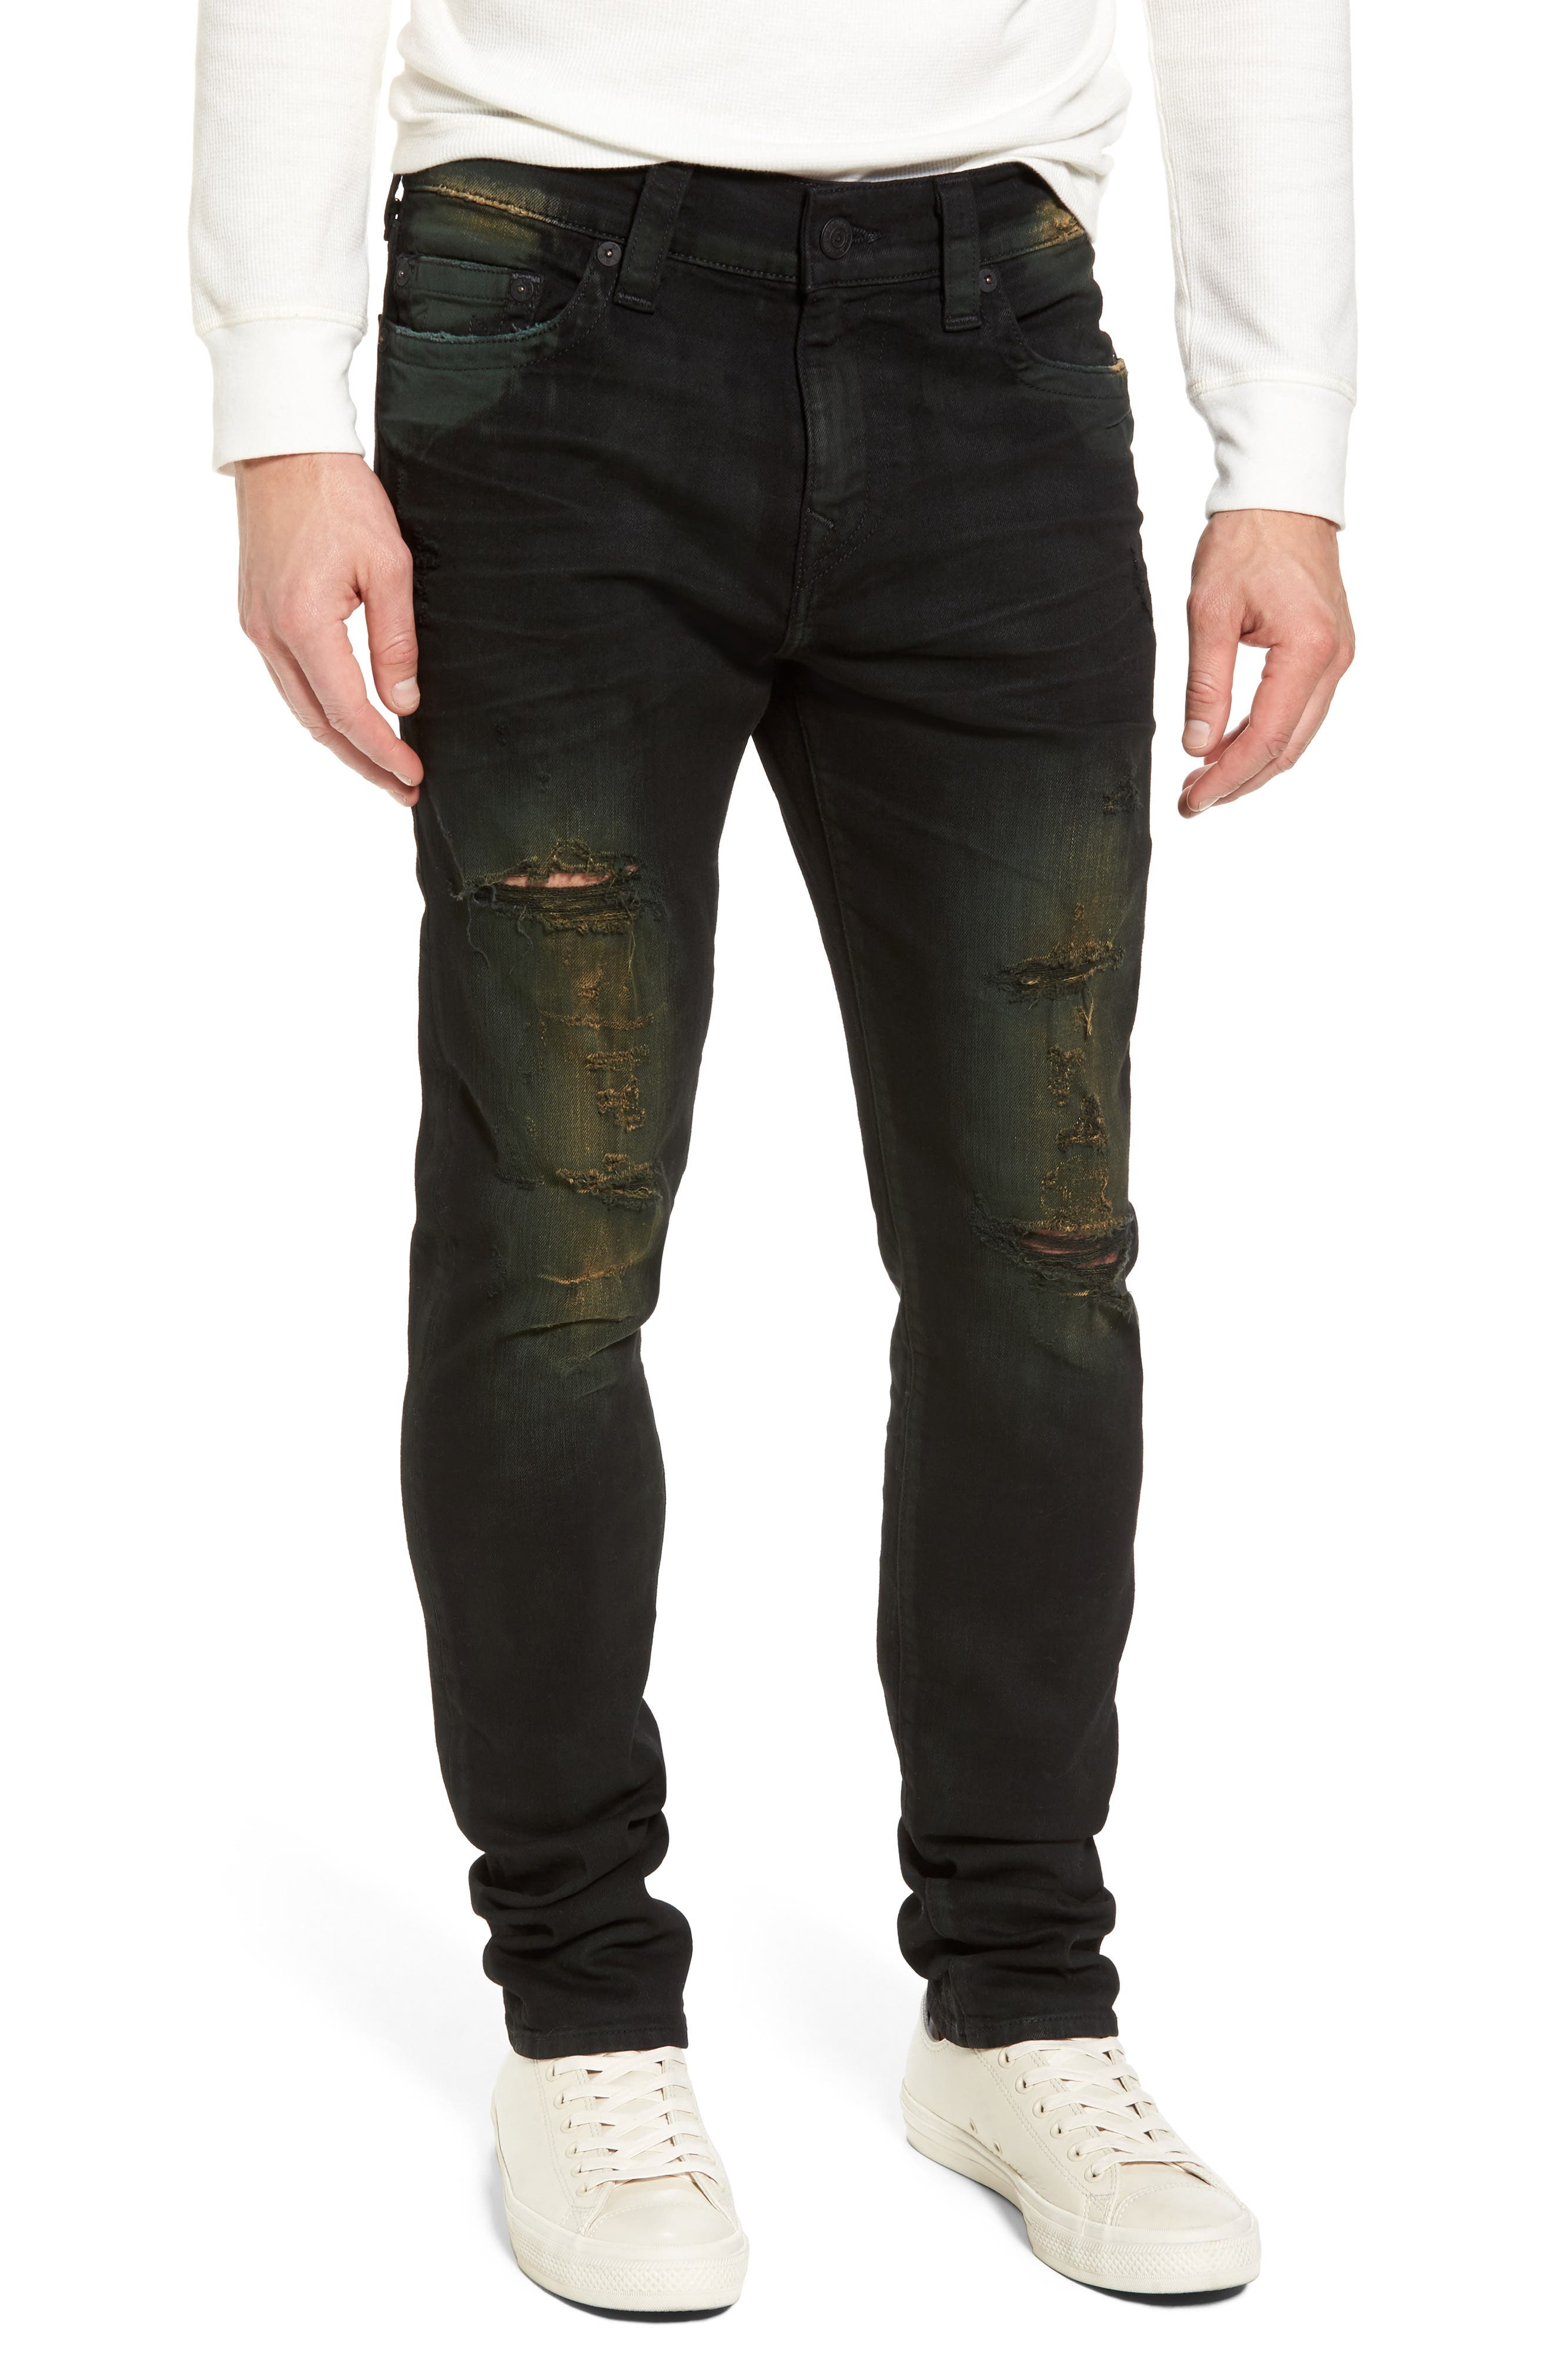 Rocco Skinny Fit Jeans,                         Main,                         color, GREEN BLAZE